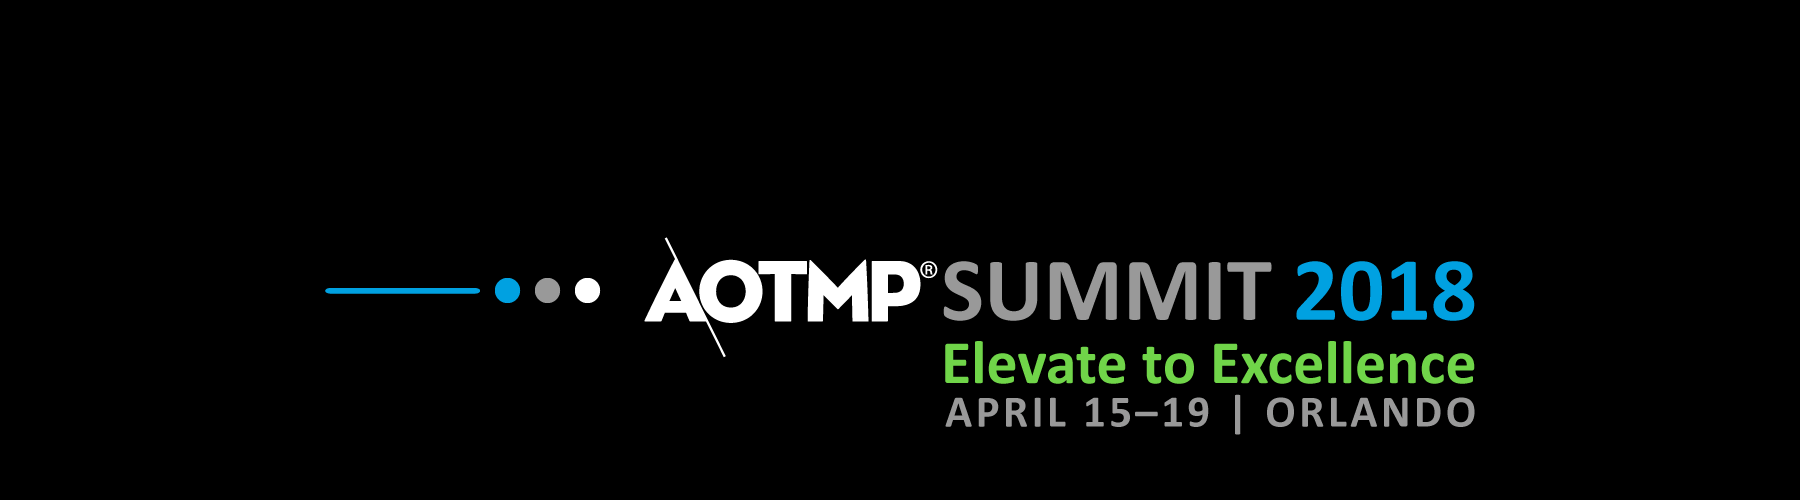 2018-aotmp-conference-logo-long-tagline-dates1800x